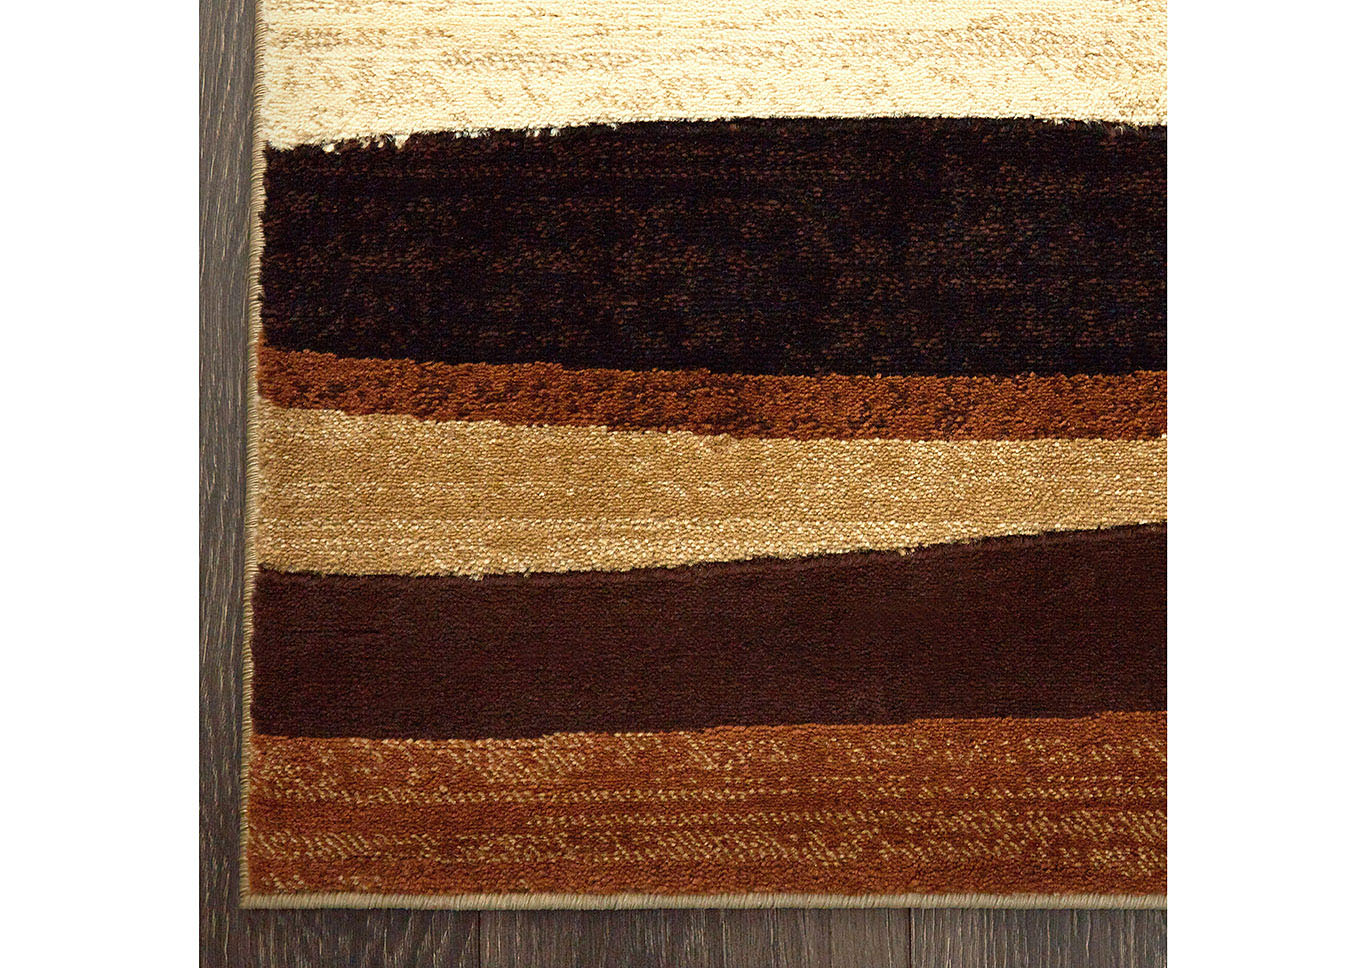 Home Dynamix Tribeca Jayden Contemporary Area Rug 39 X55 Striped Brown Beige Black Renaissance Philadelphia Pa